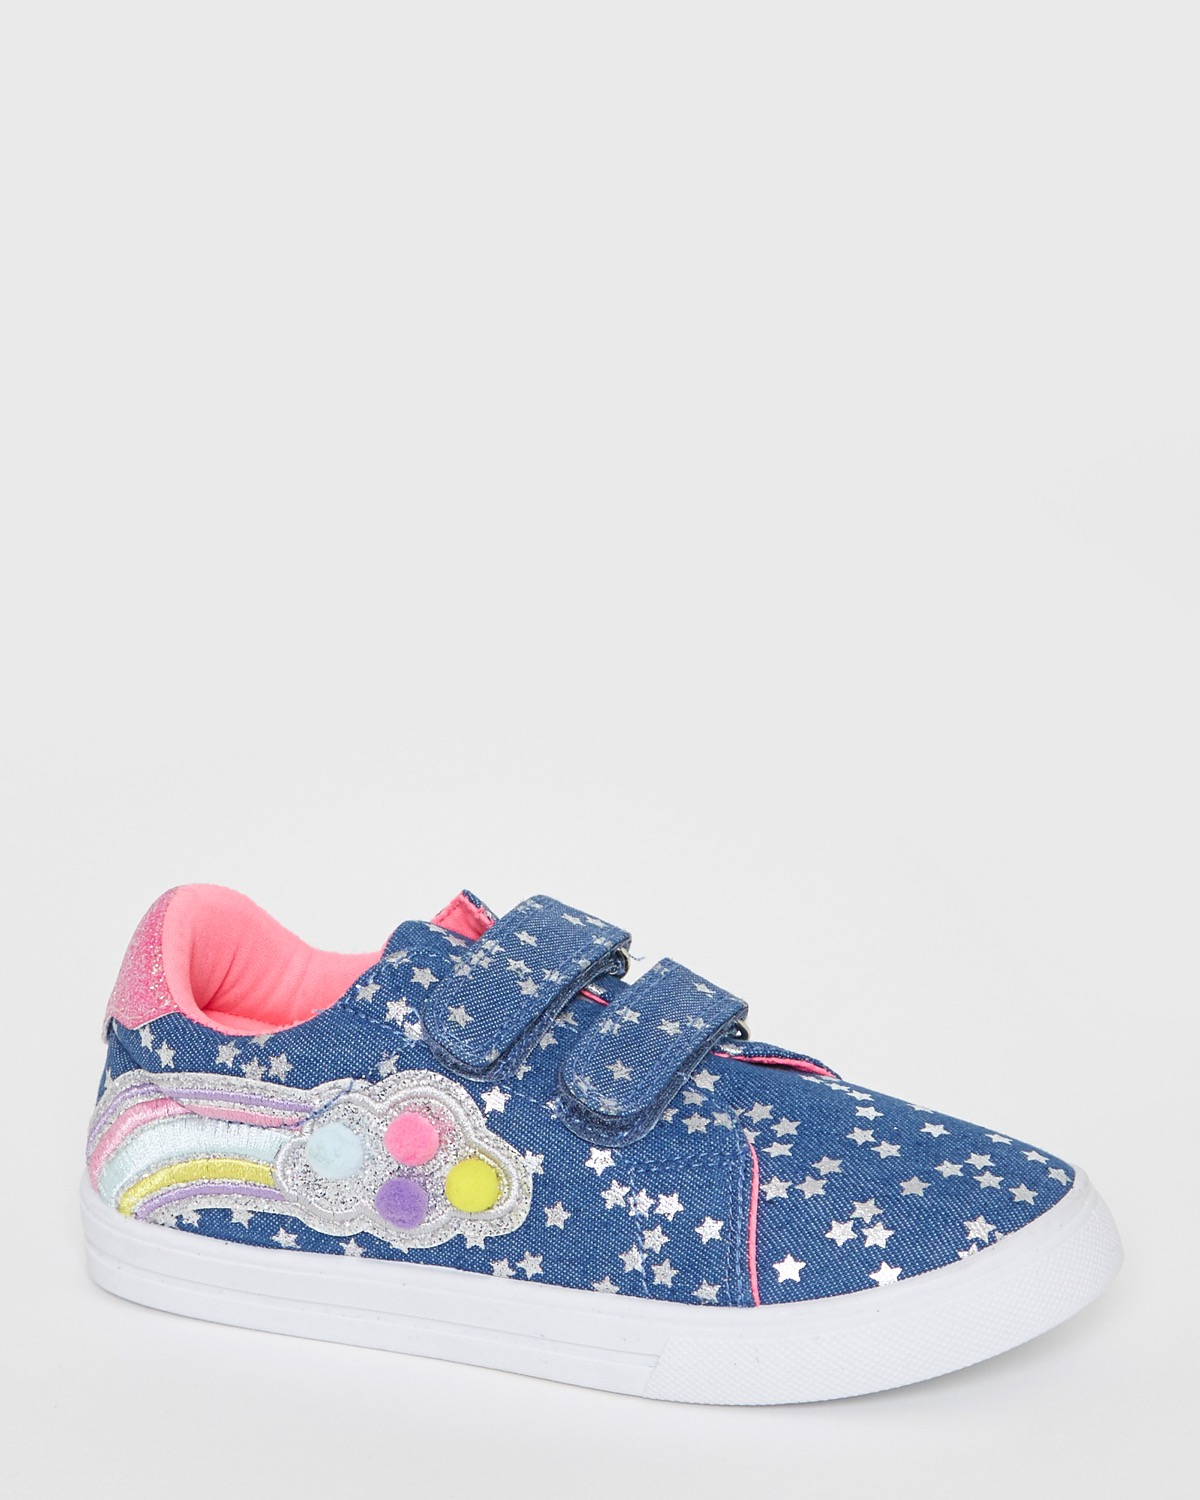 Denim Younger Girls Fashion Canvas Shoes